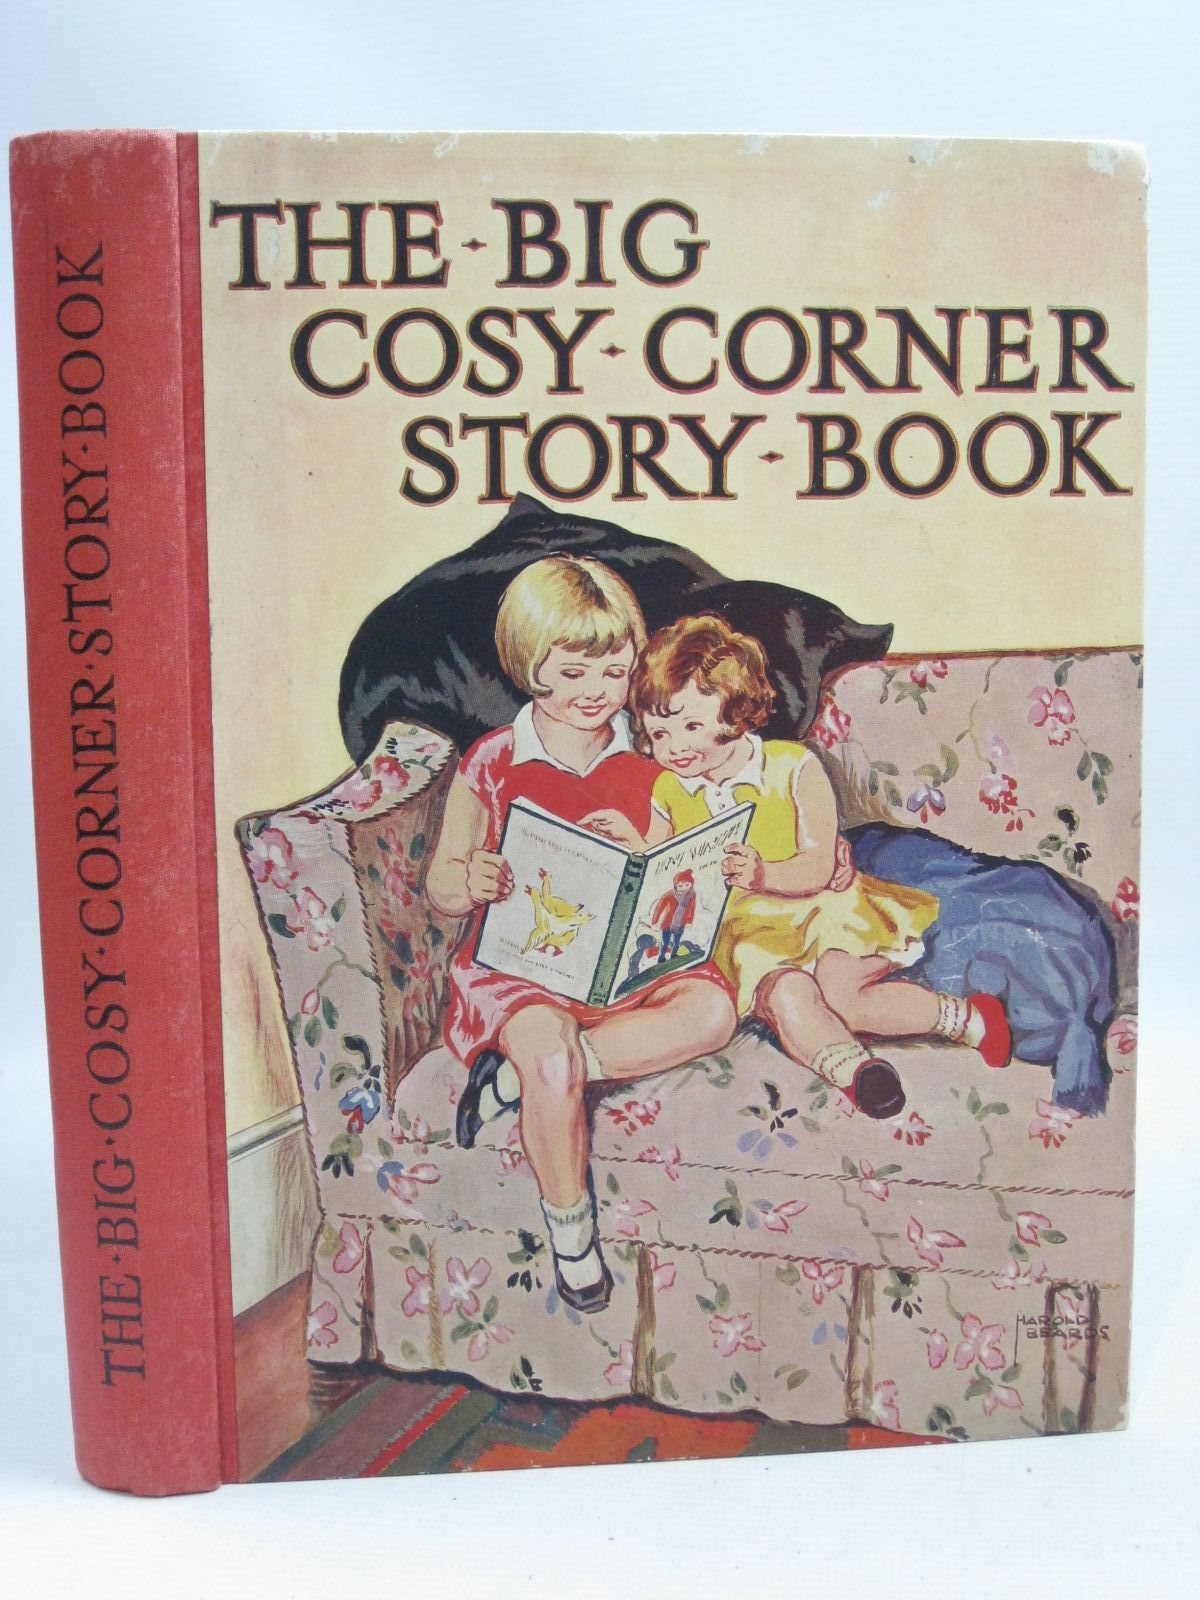 Photo of THE BIG COSY CORNER STORY BOOK written by Lambert, H.G.C. Marsh et al, illustrated by Lambert, H.G.C. Marsh Appleton, Honor C. Topham, Inez et al., published by Ward, Lock & Co. Ltd. (STOCK CODE: 1405365)  for sale by Stella & Rose's Books